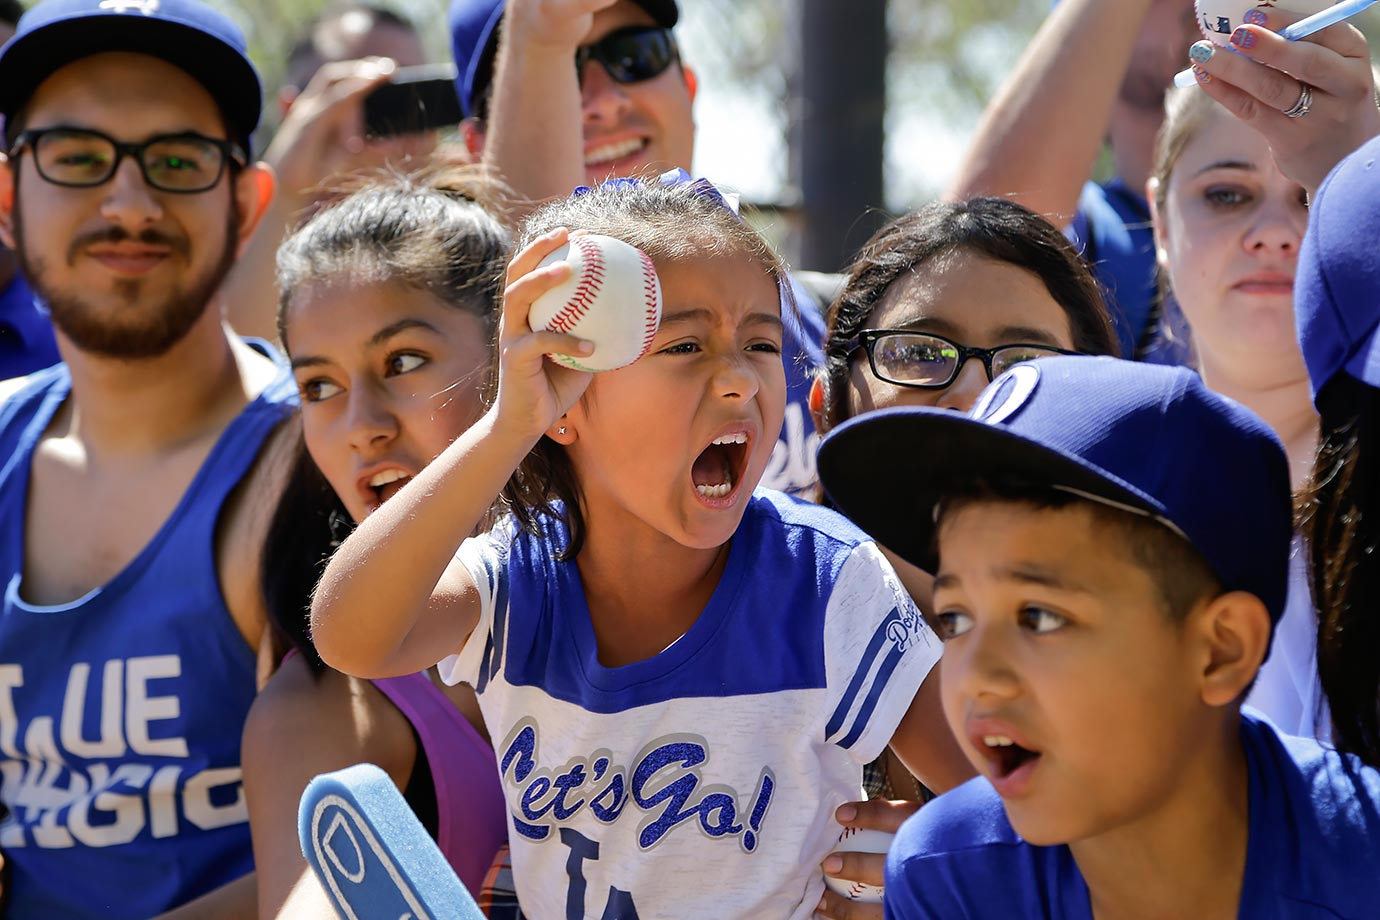 Fans ask for autographs as Los Angeles Dodgers players arrive for practice before the team's spring training game against the Cincinnati Reds in Phoenix.